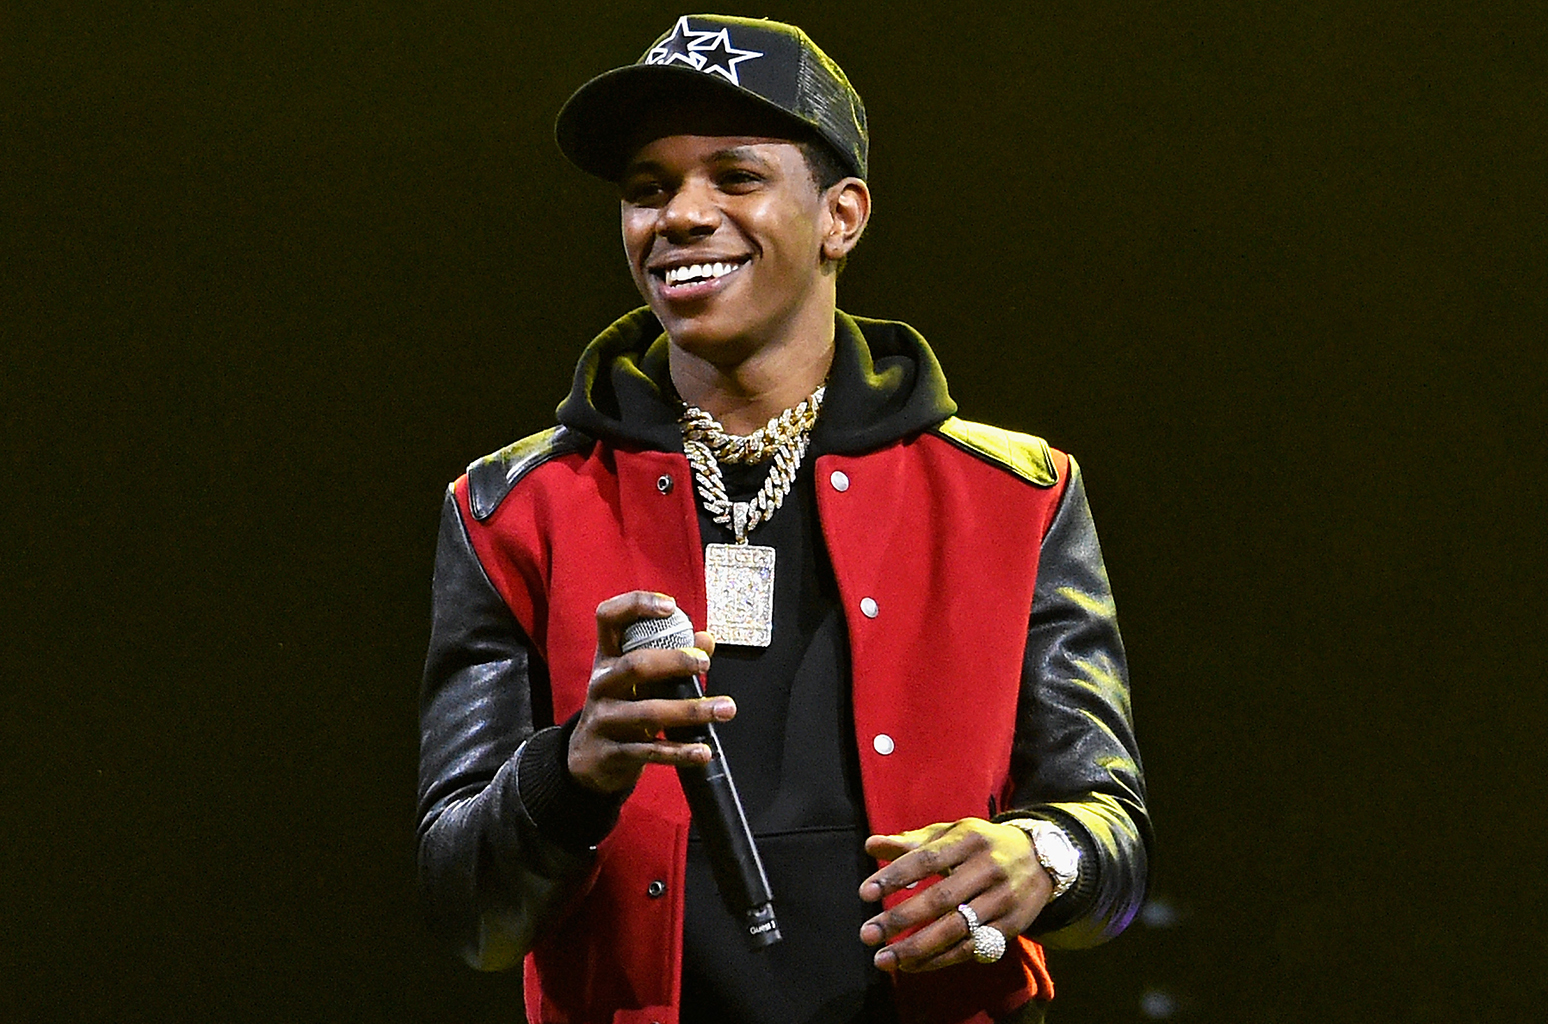 A Boogie Wit Da Hoodie Reveals The Truth Behind Why He D Like To Make Pop Music From The Stage